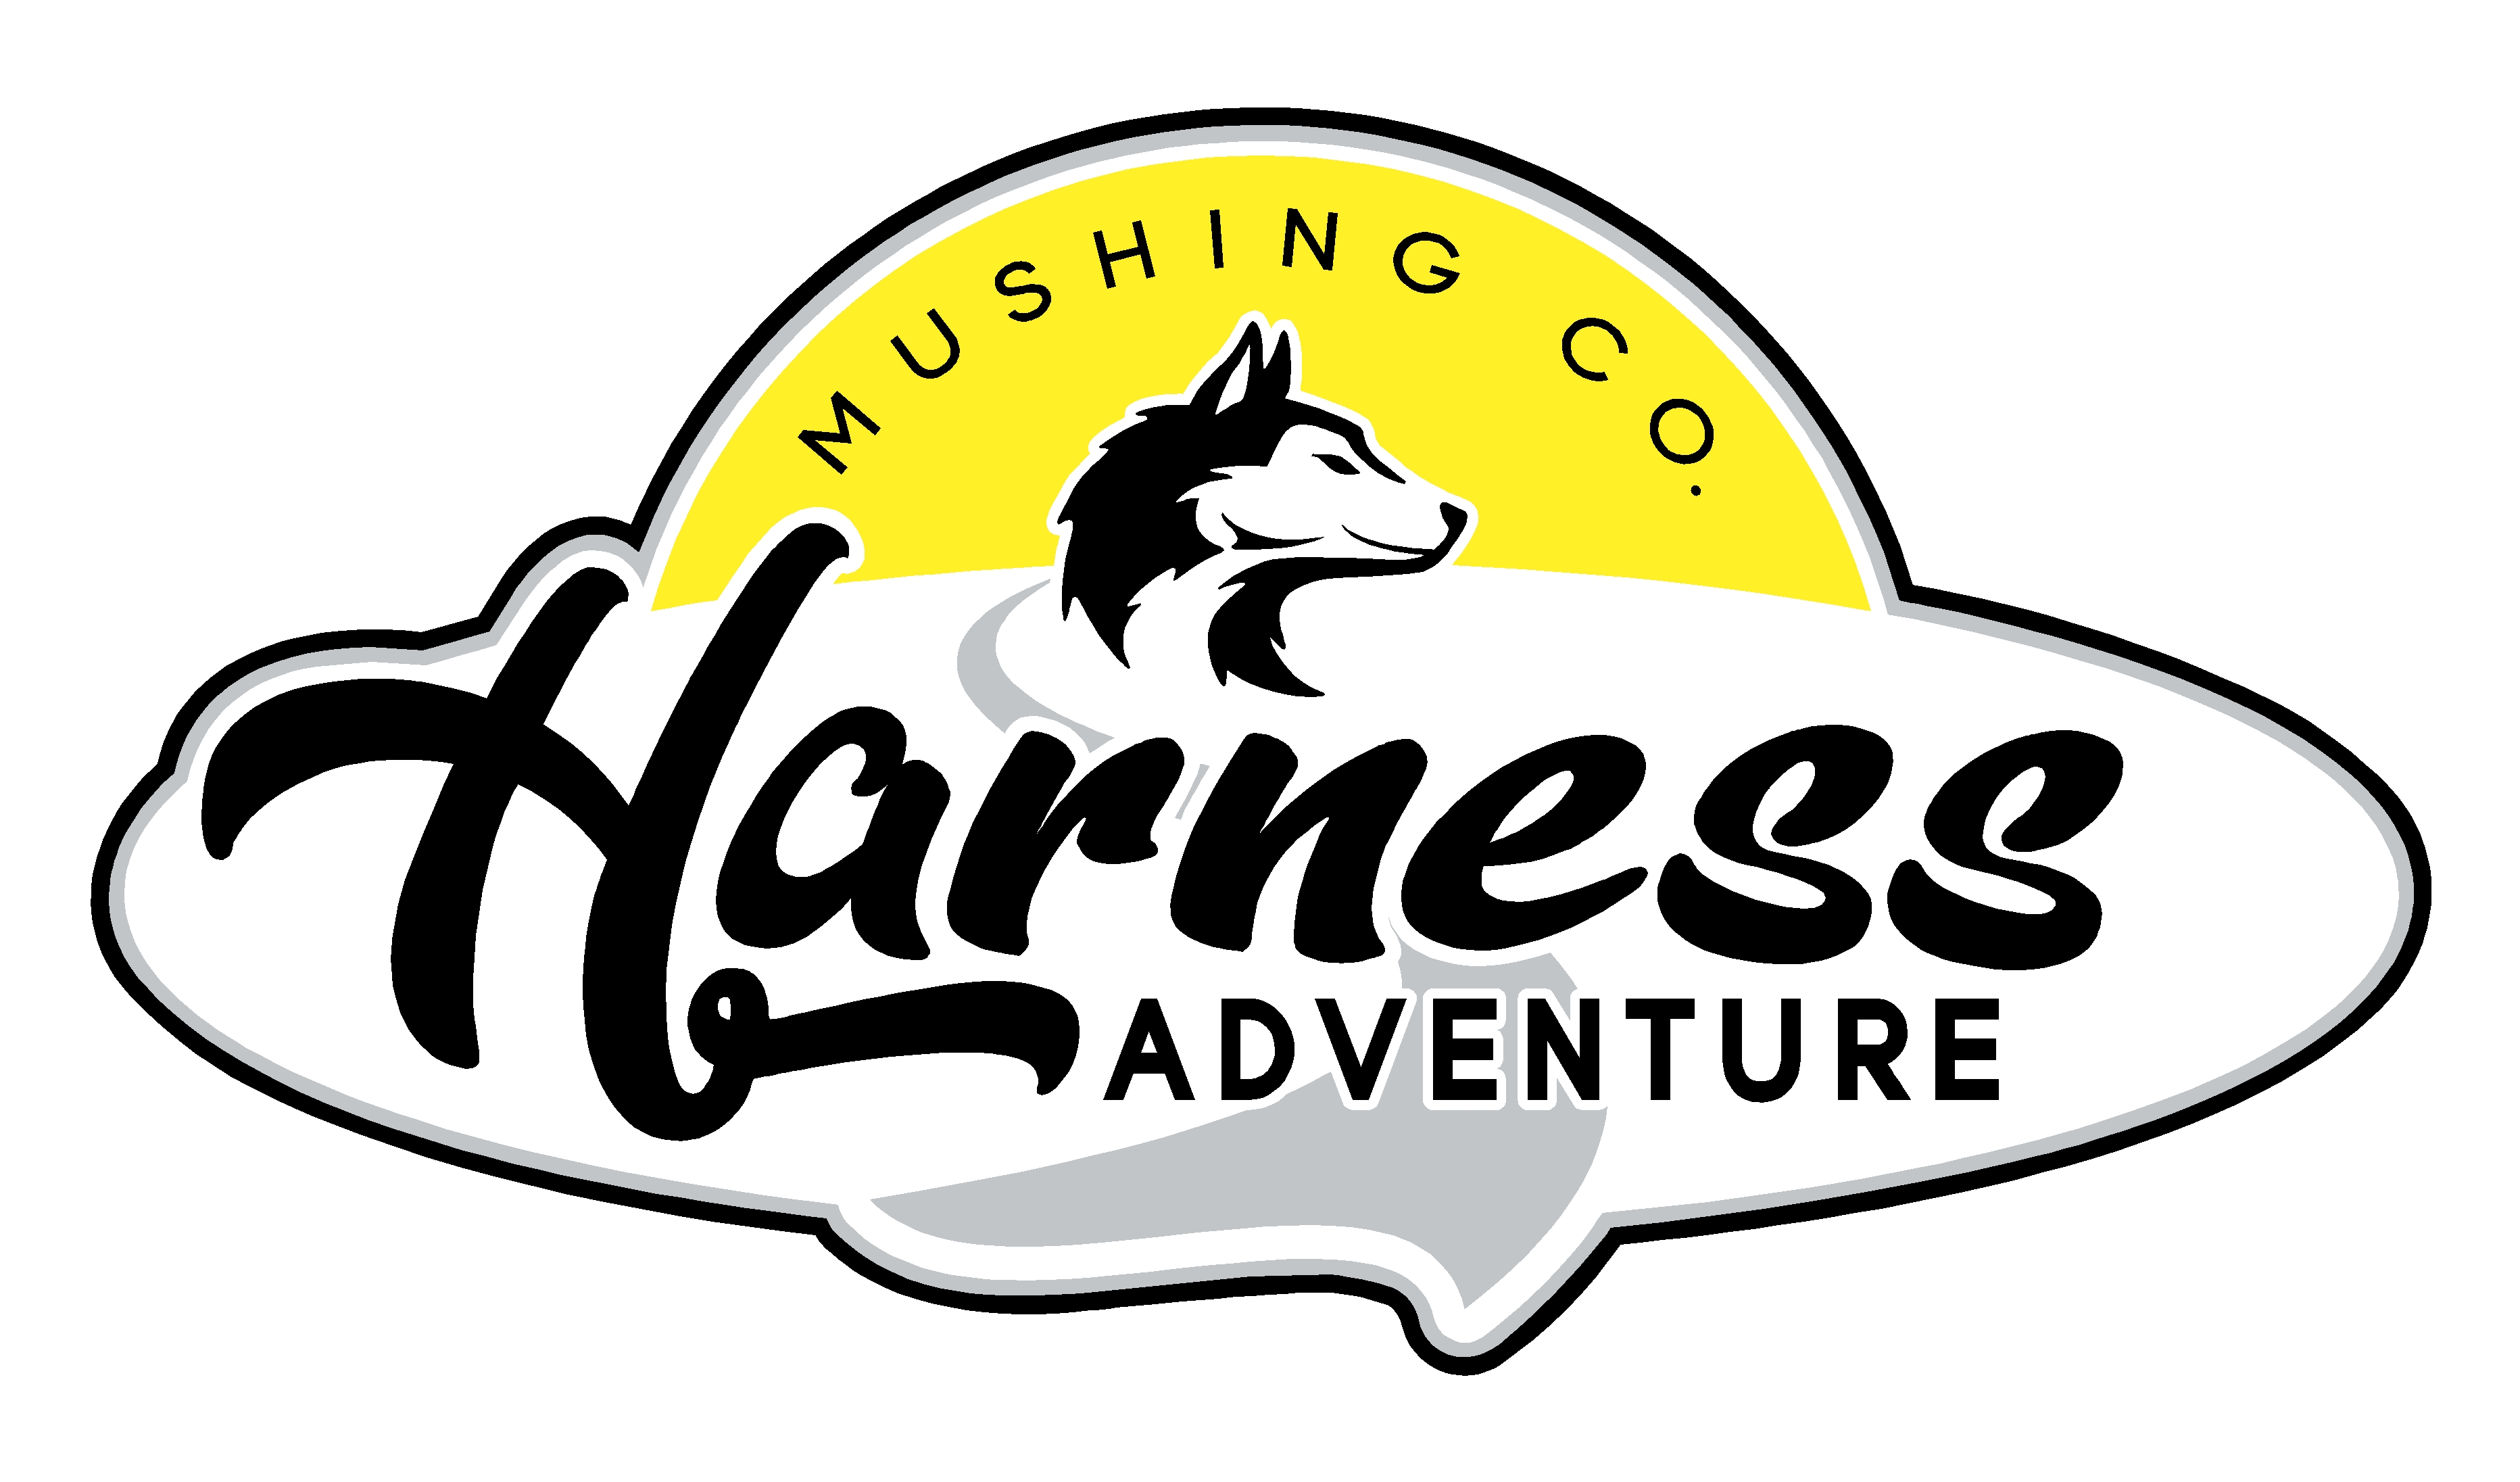 Harness Adventure Mussing Co.